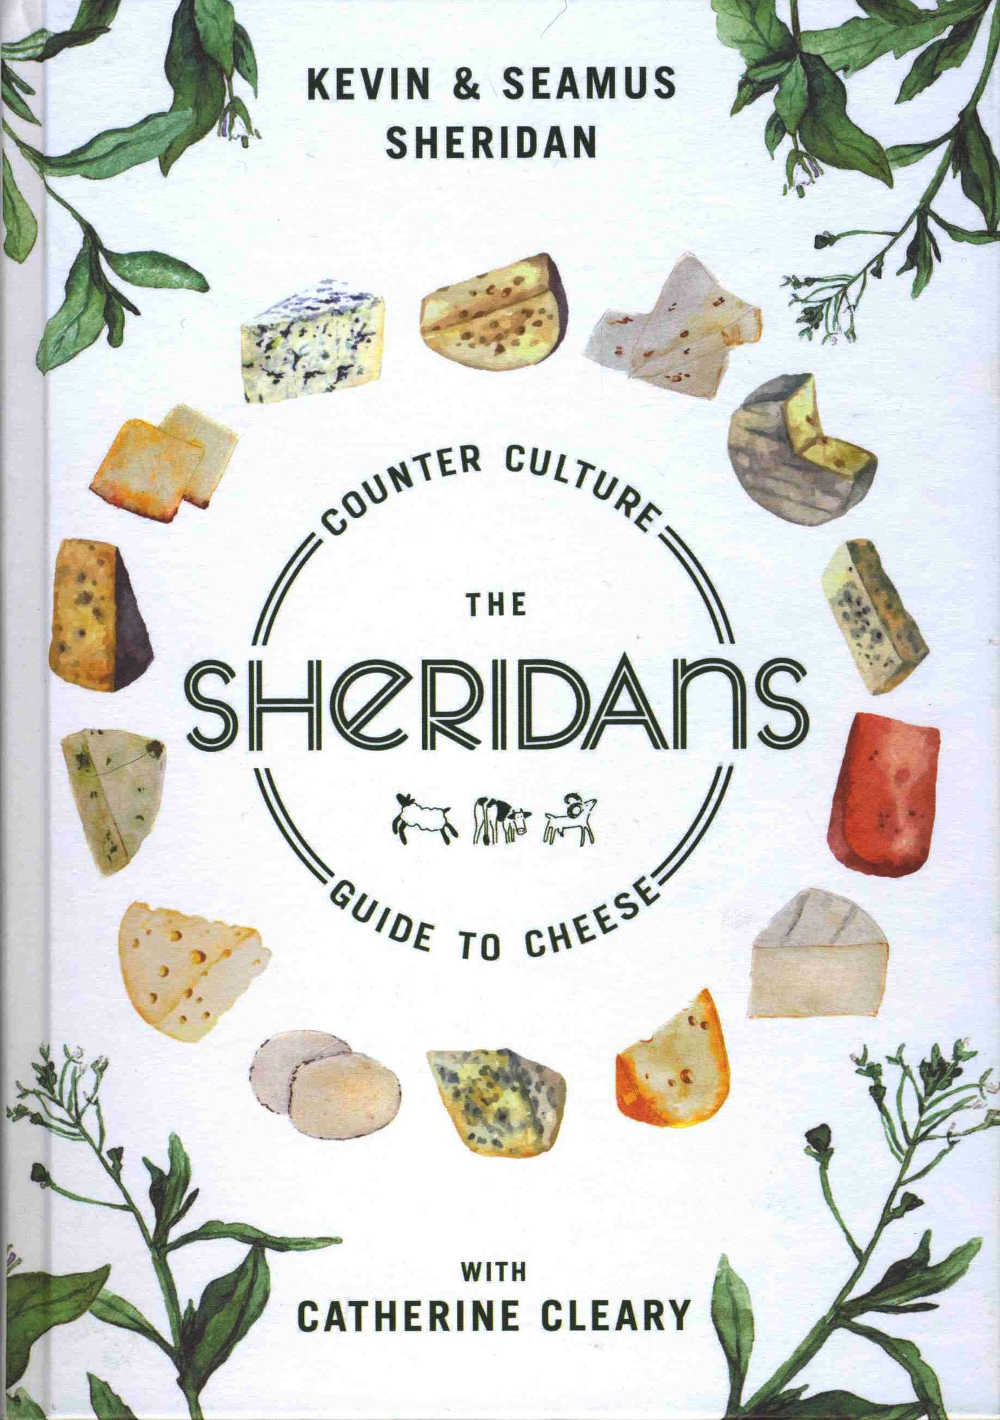 Counter Culture - The Sheridans Guide to Cheese, by Kevin and Seamus Sheridan, with Catherine Cleary (Transworld; hardback, £16.99)